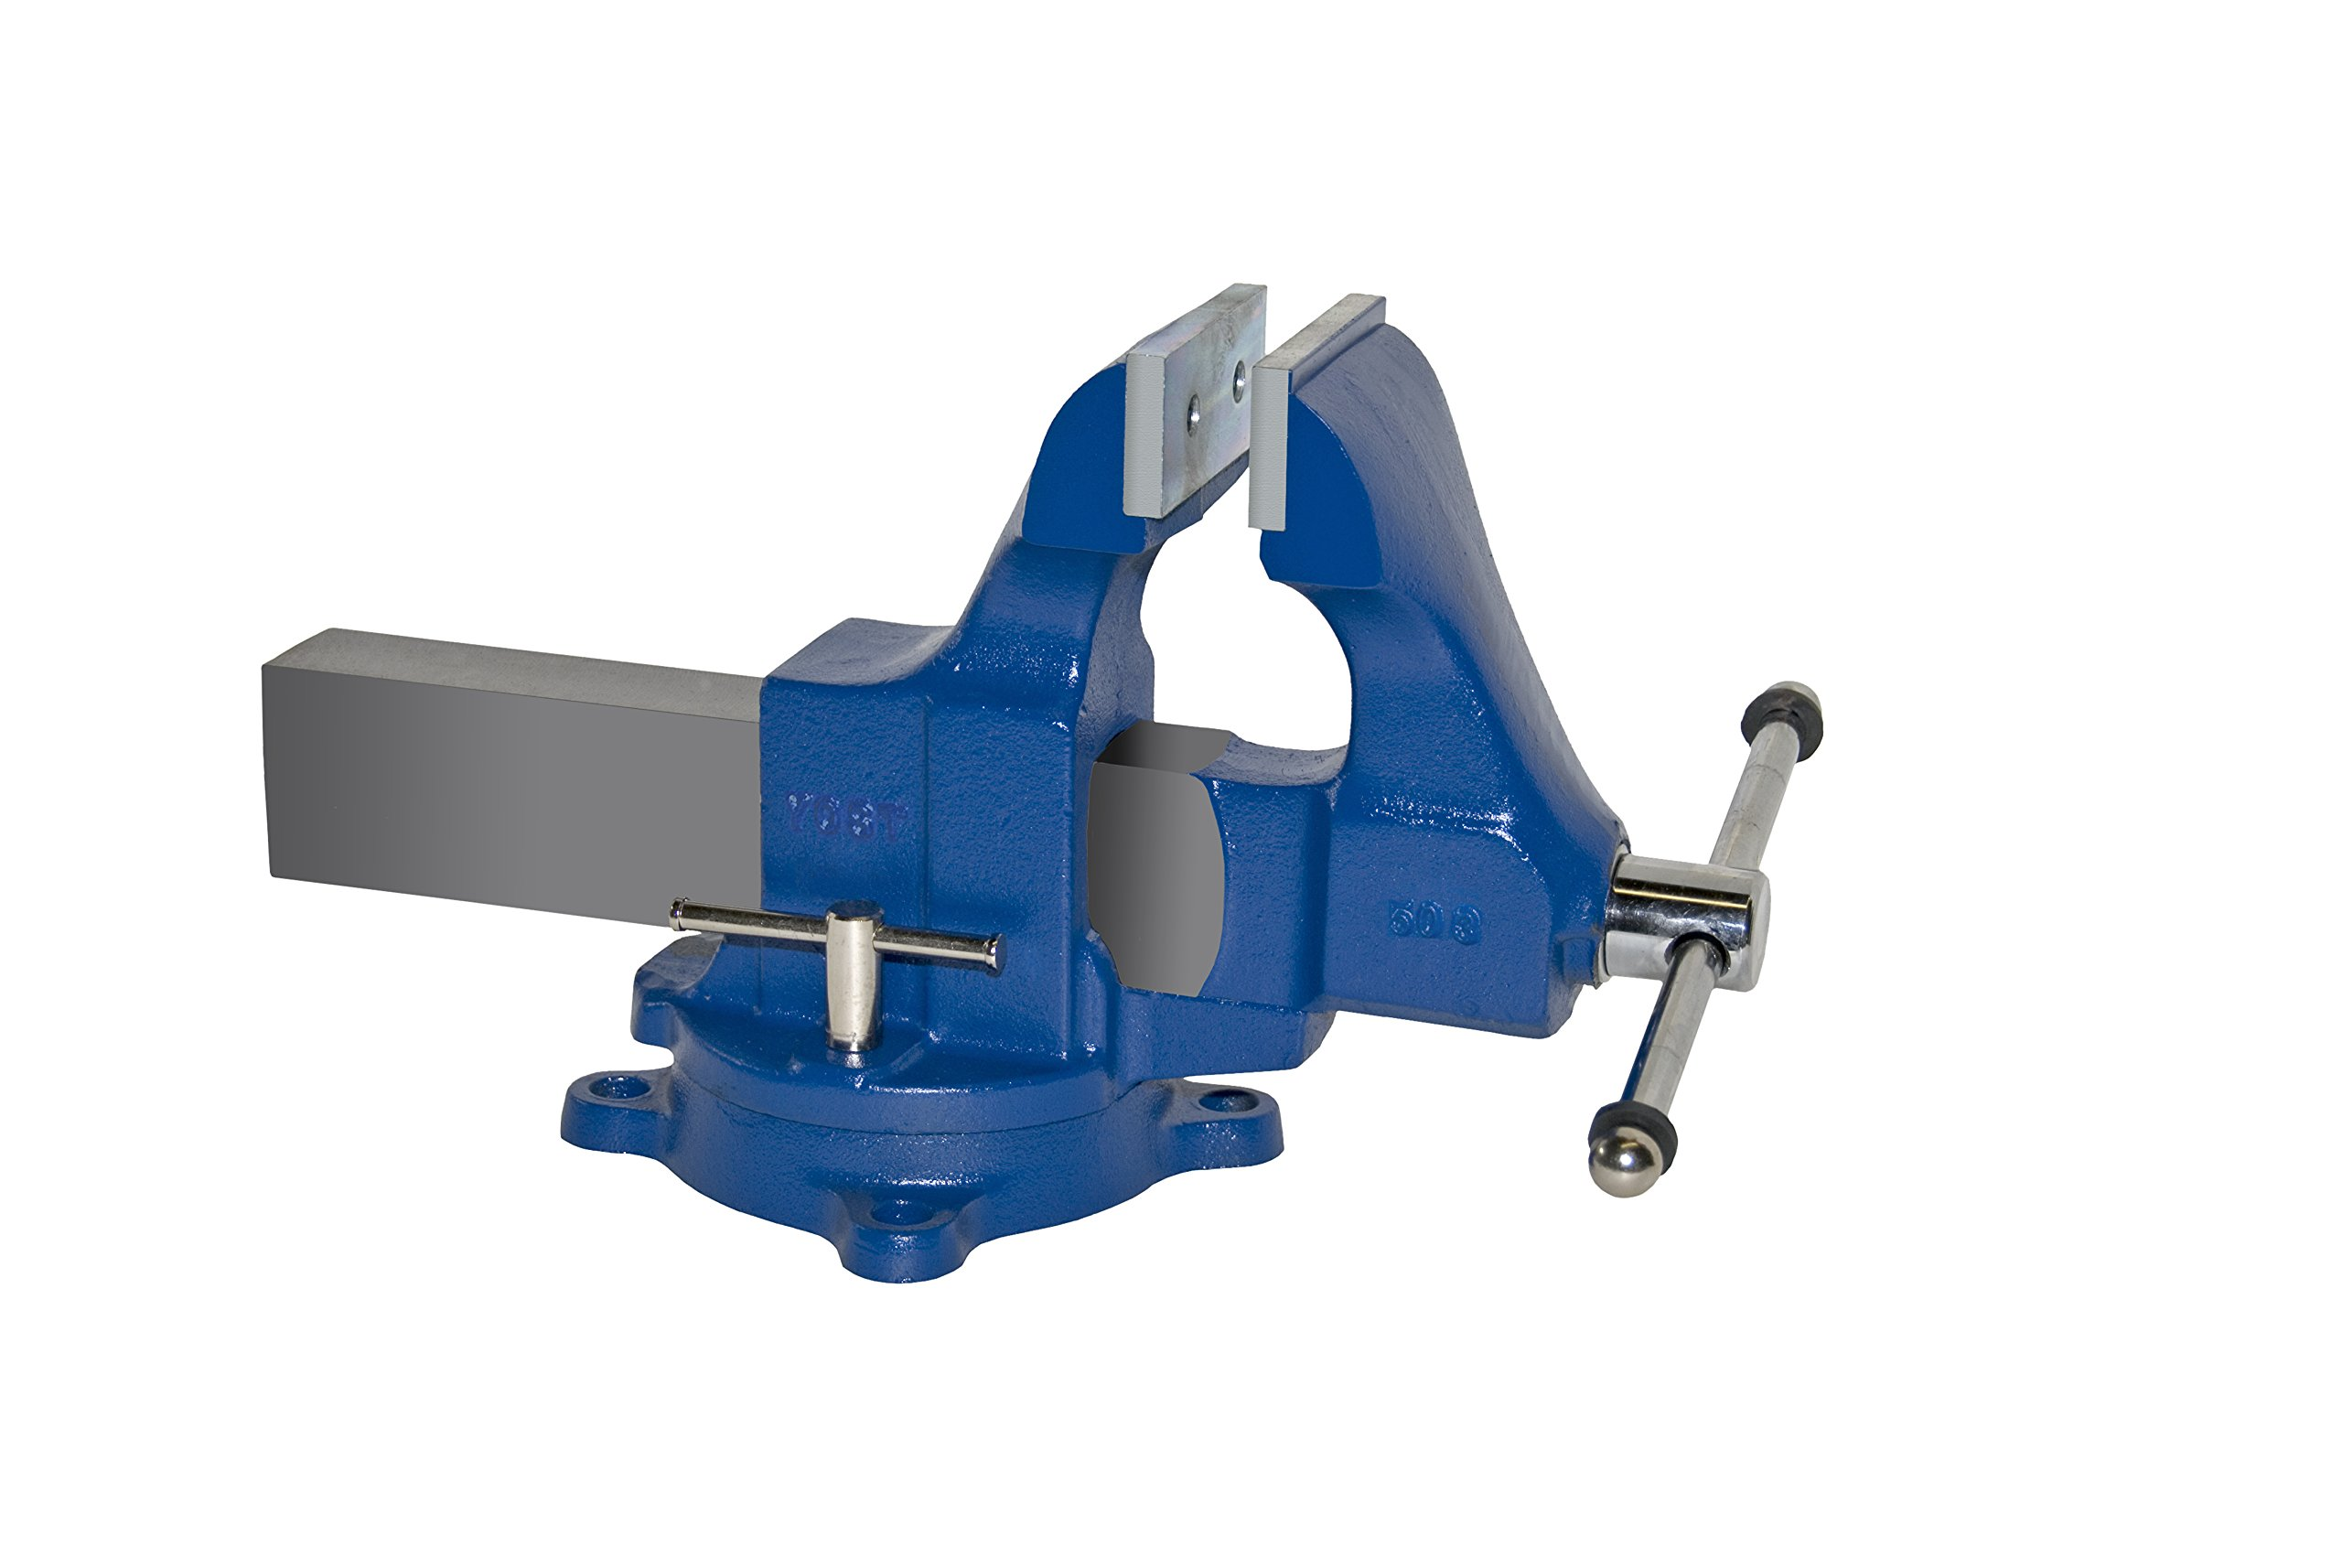 Yost Vises 503 4.5'' Sheet Metal Vise with 360-degree Swivel Base, Made in US